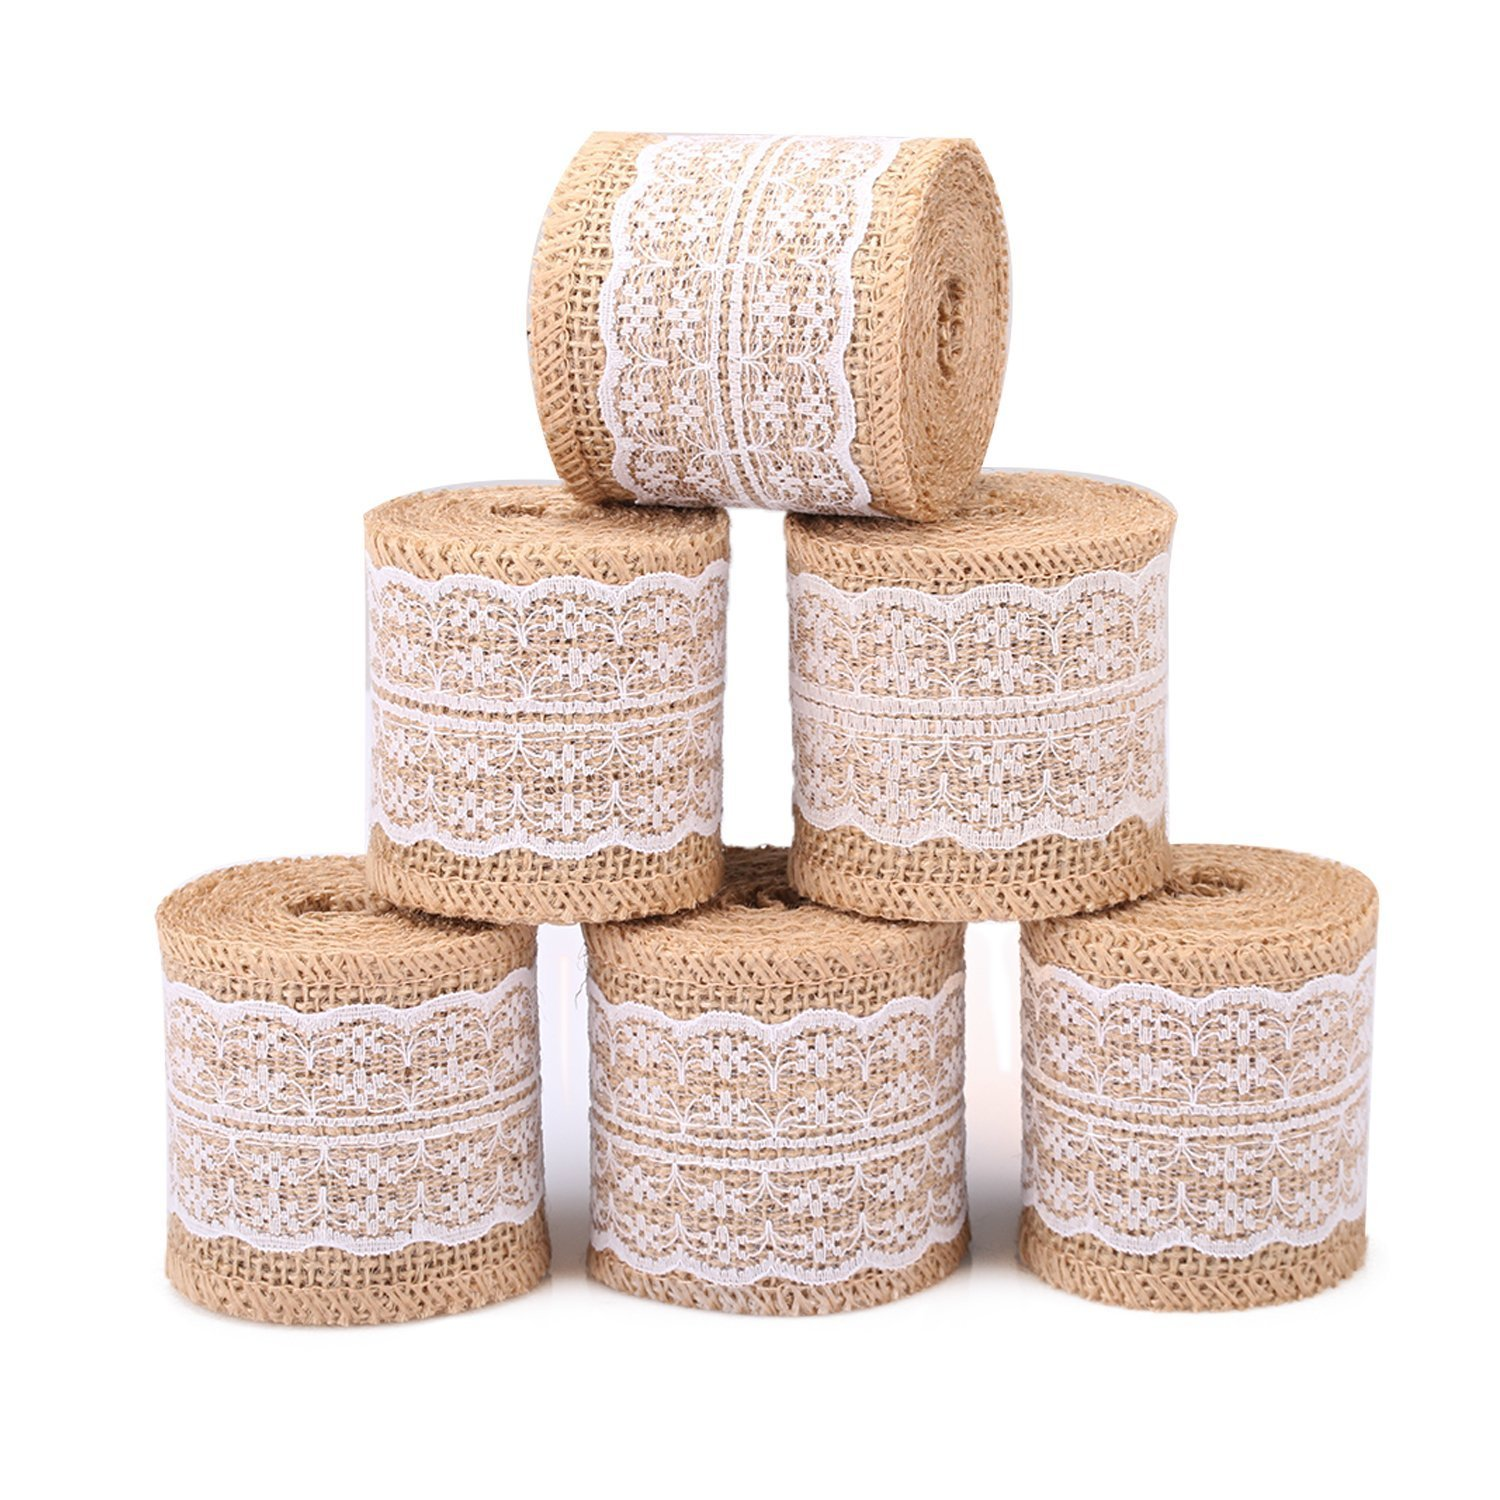 Z& S Groups Natural Burlap Ribbon White Lace Trim Fabric Roll ZoraSelena 6 PCS Burlap Roll Rustic Wedding Decorations 2.3 inches Wide Ribbon Crafts Burlap Lace 78.7 inches Each 4336860374